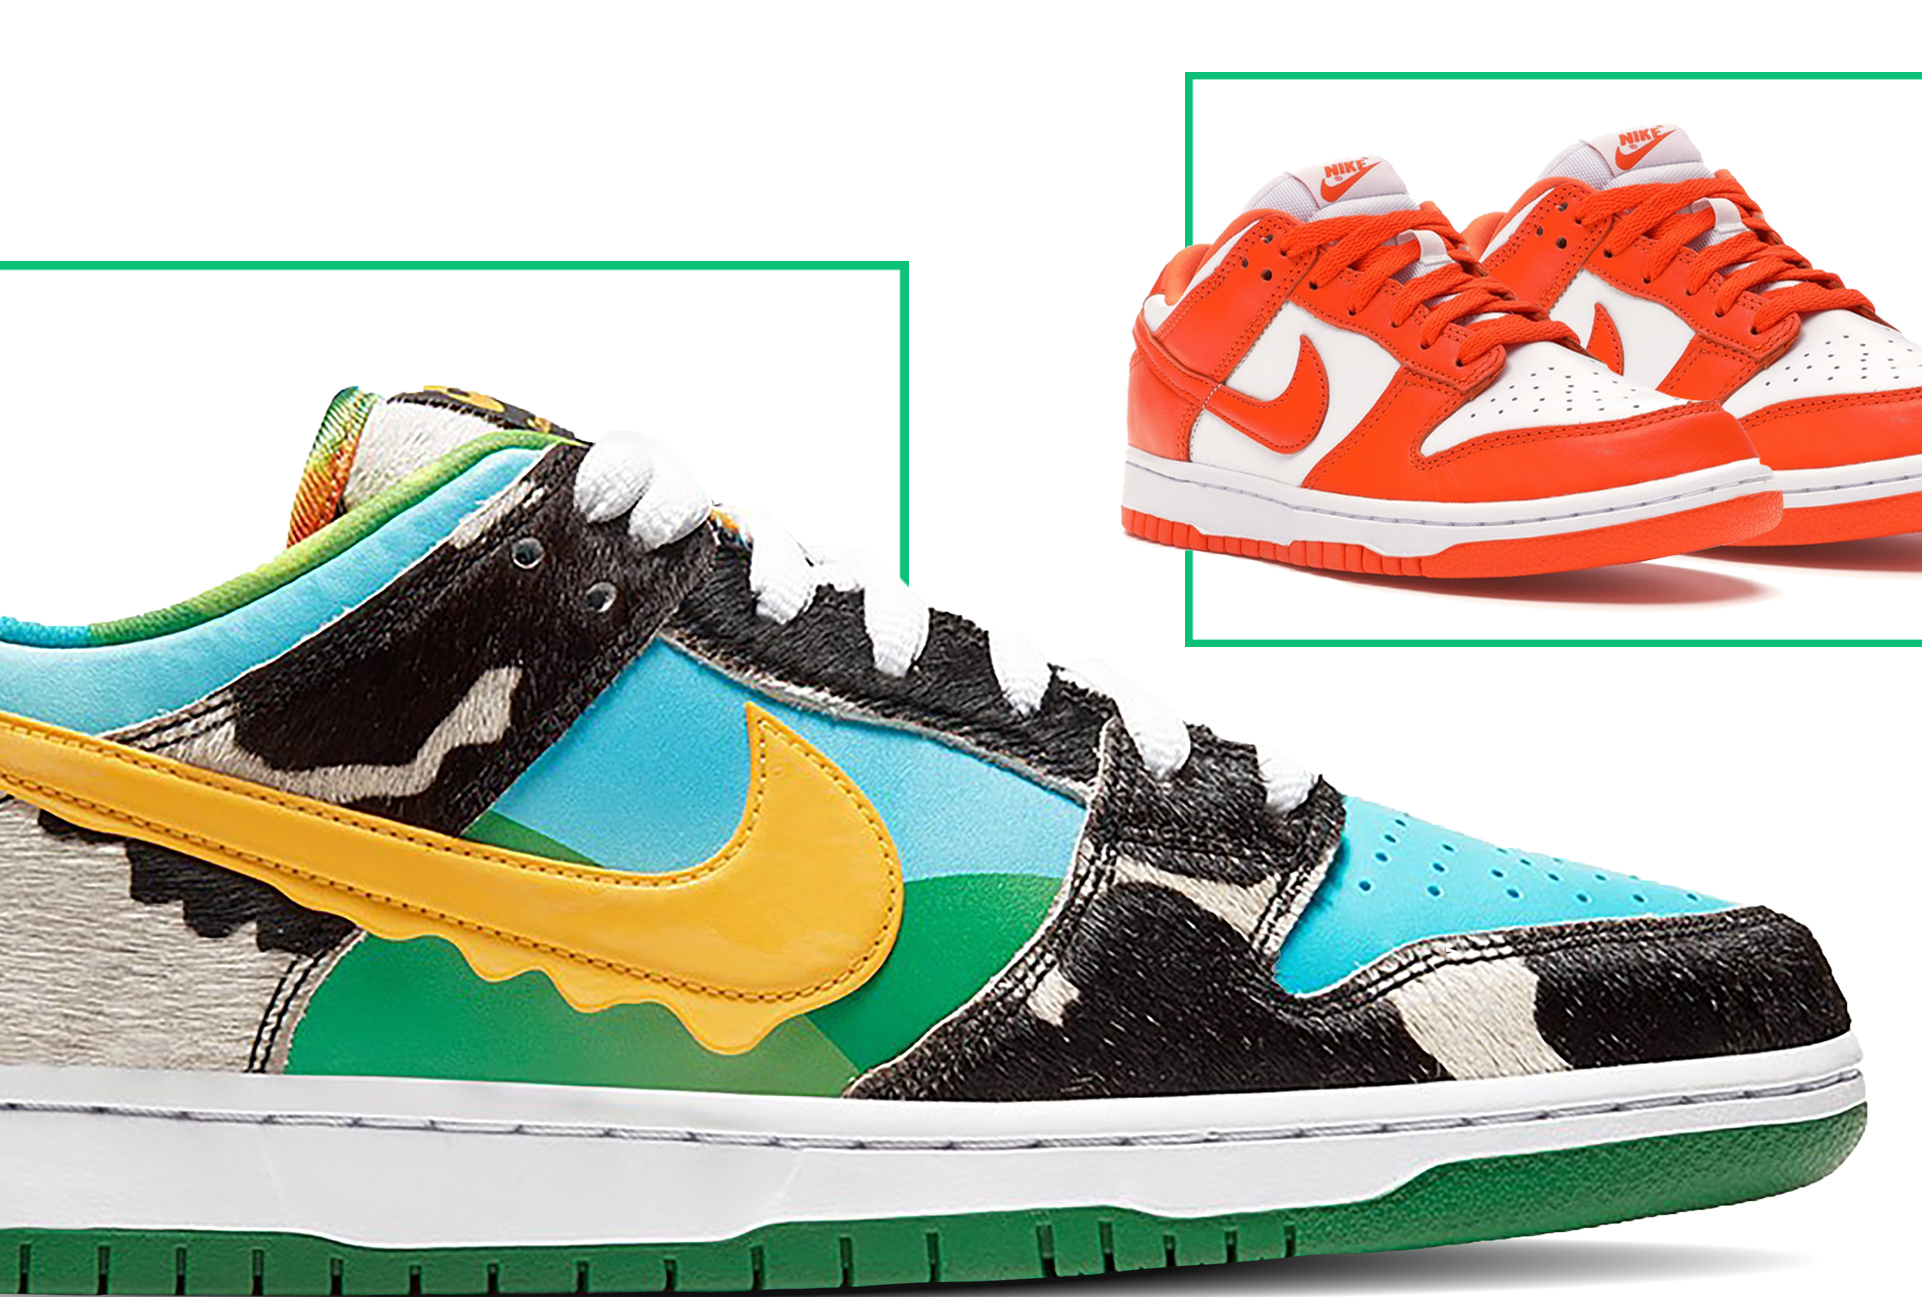 The Best SNKRS Releases In 2020 So Far